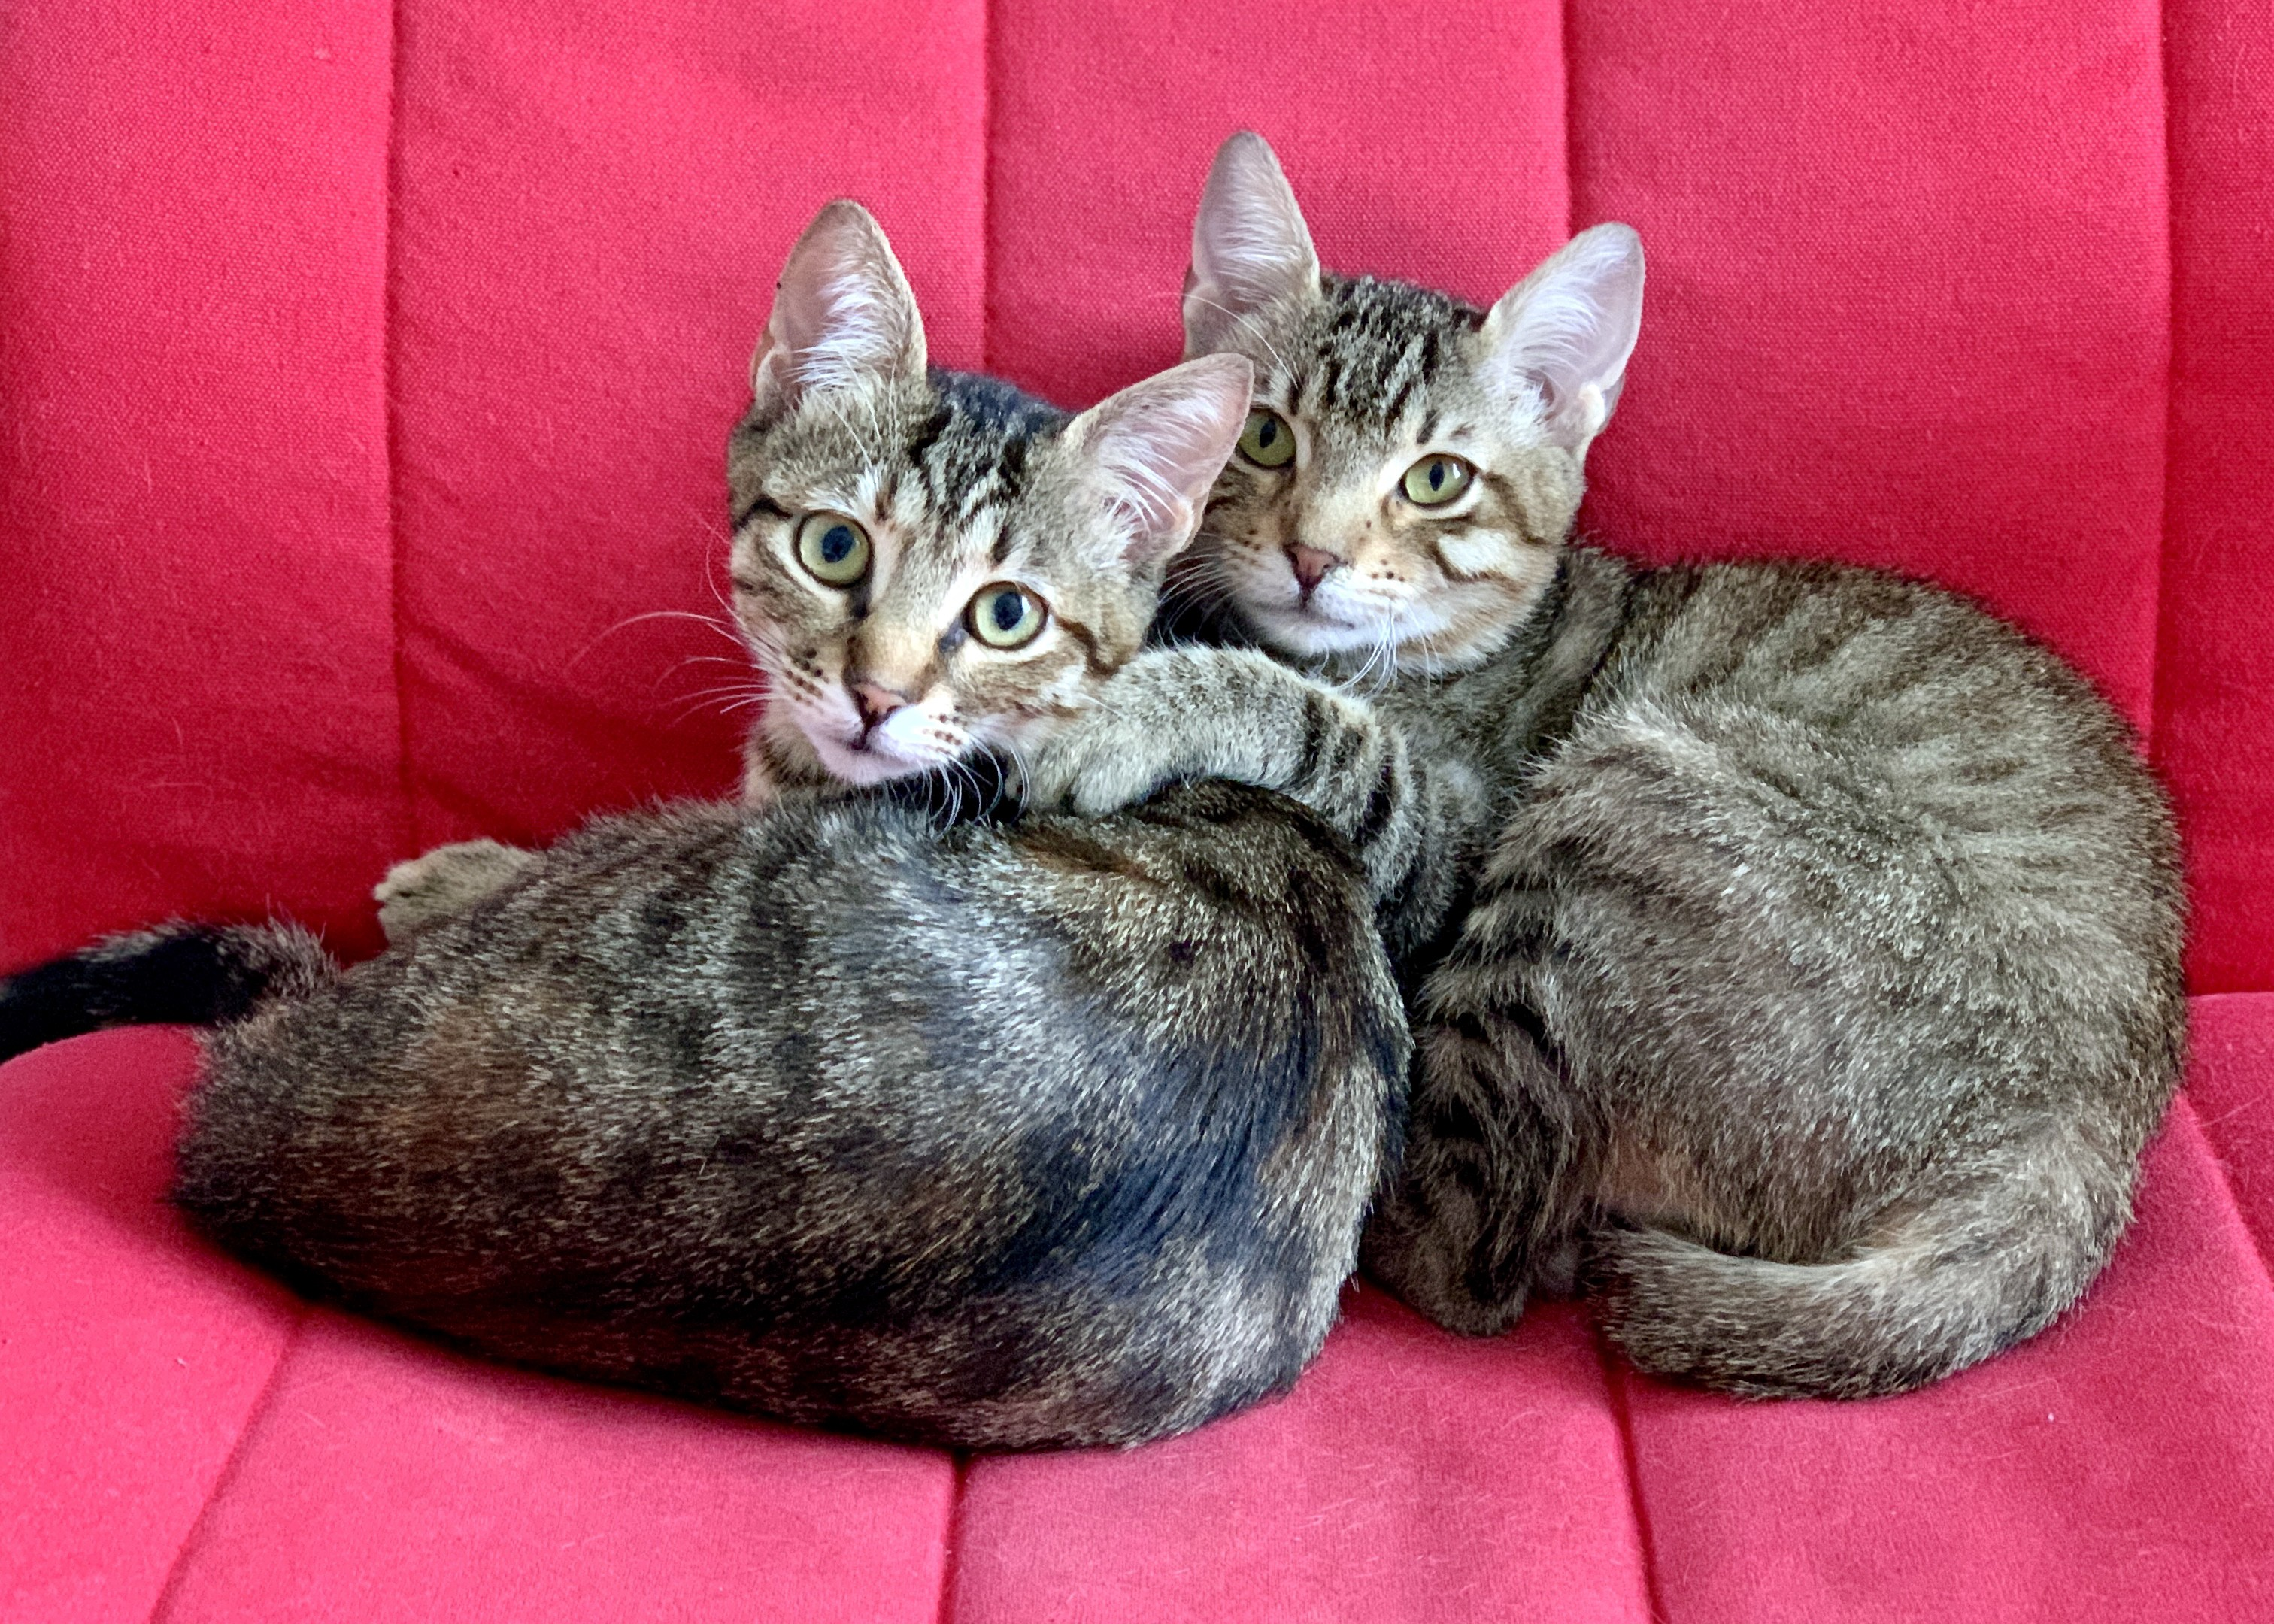 Two cats on a red chair